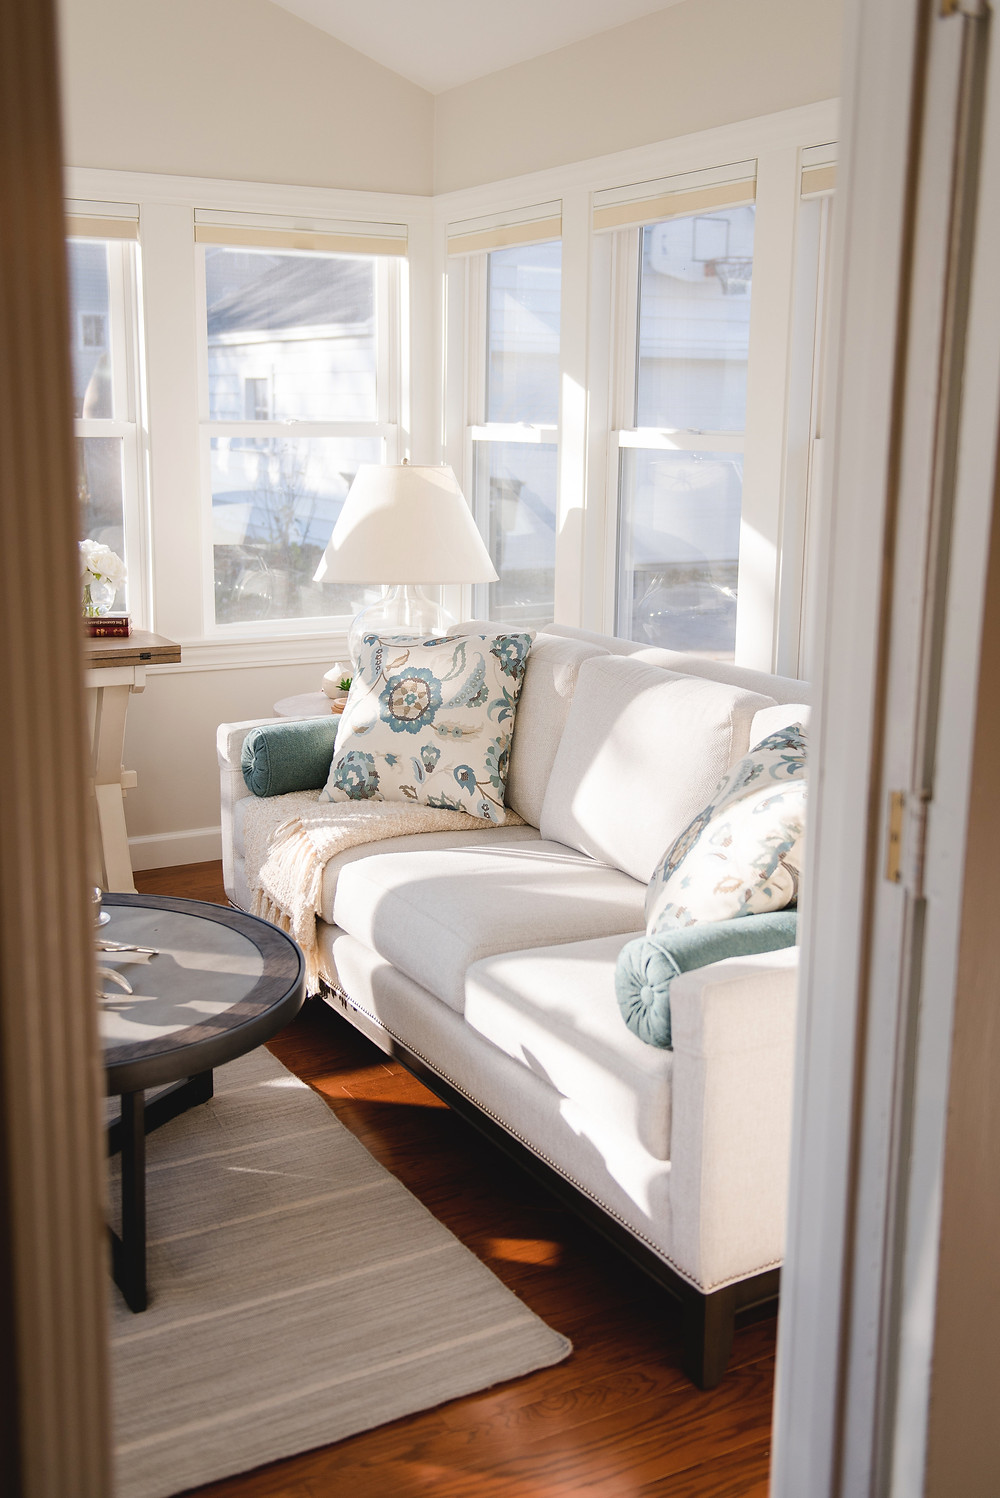 A white couch with teal accent pillows.